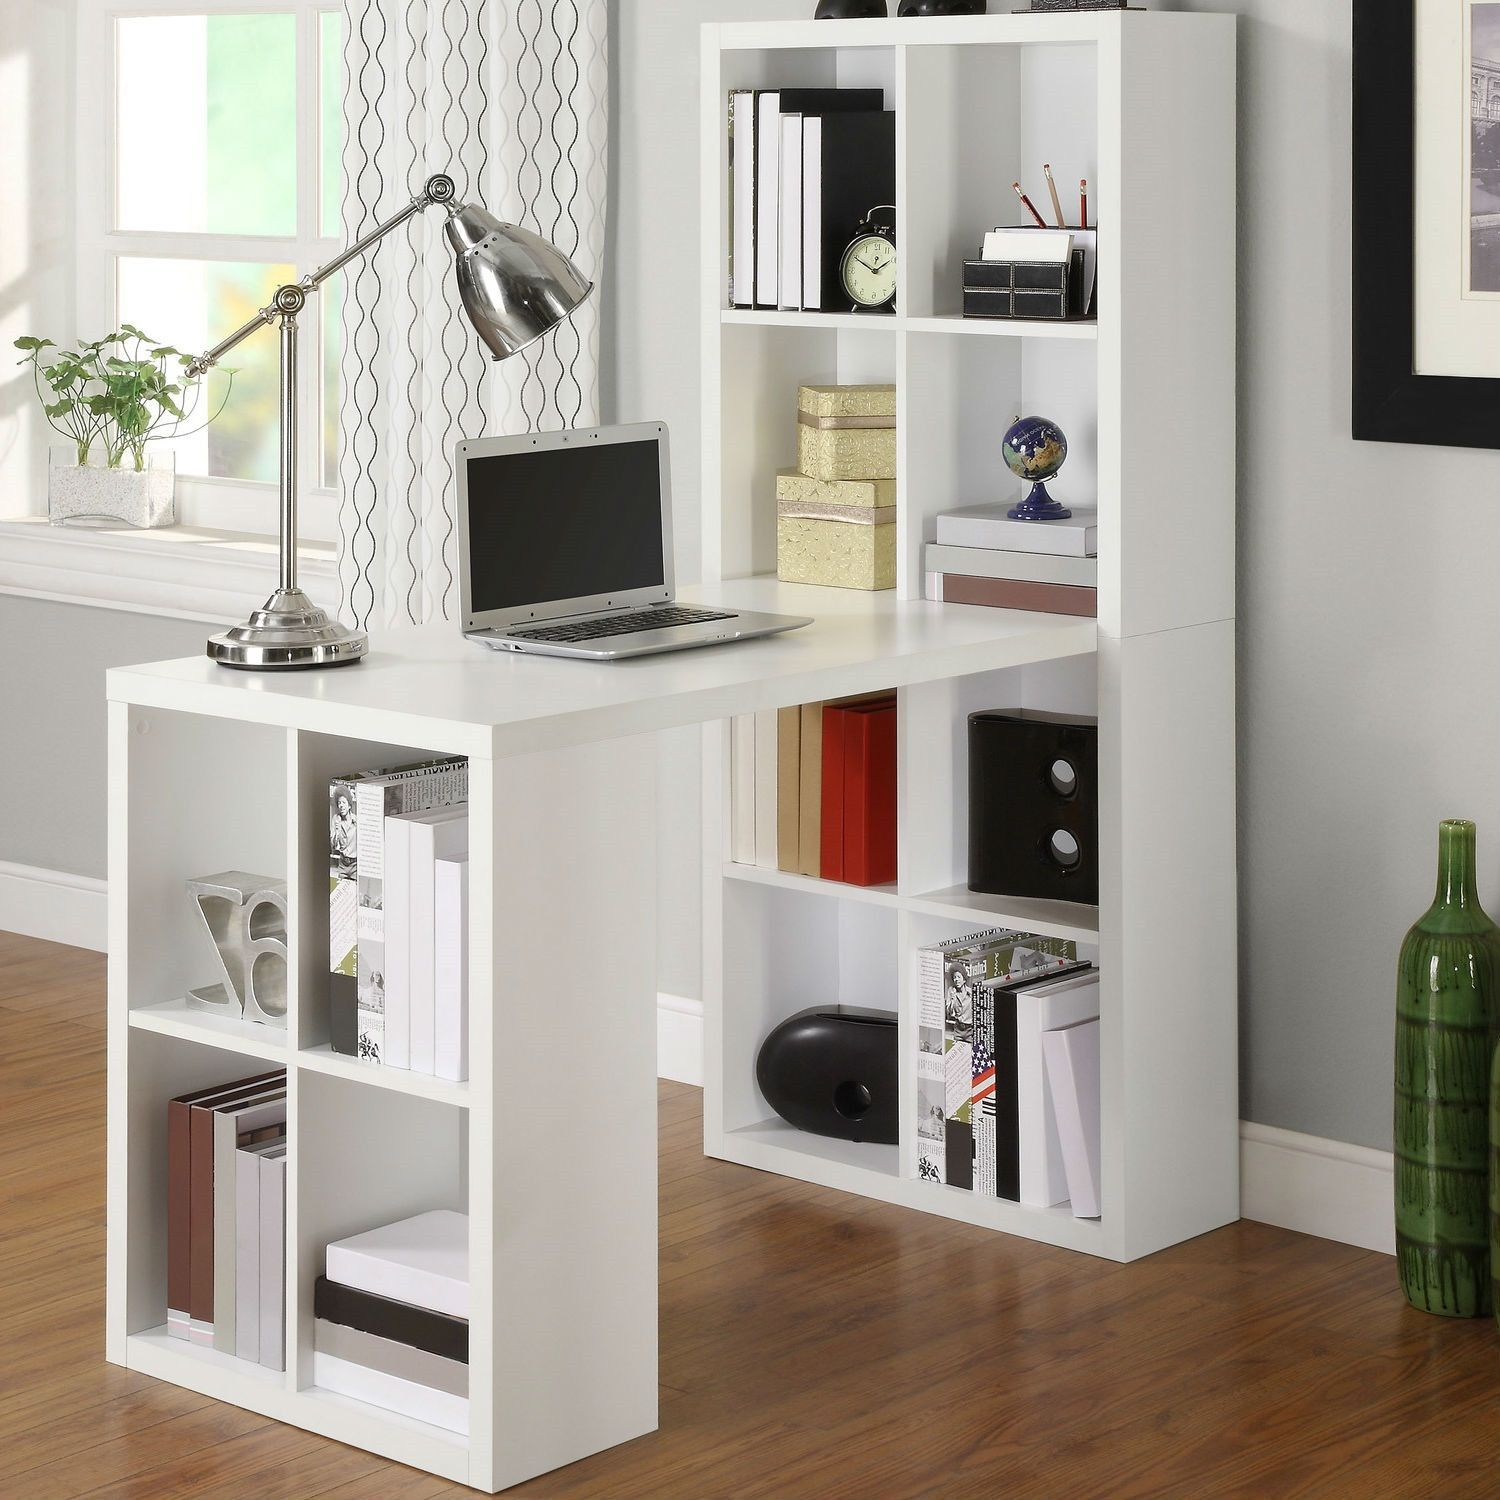 Home Office Laptop Computer Desk Writing Table With Storage In White Wood Finish Idee Decoration Cuisine Bureau A